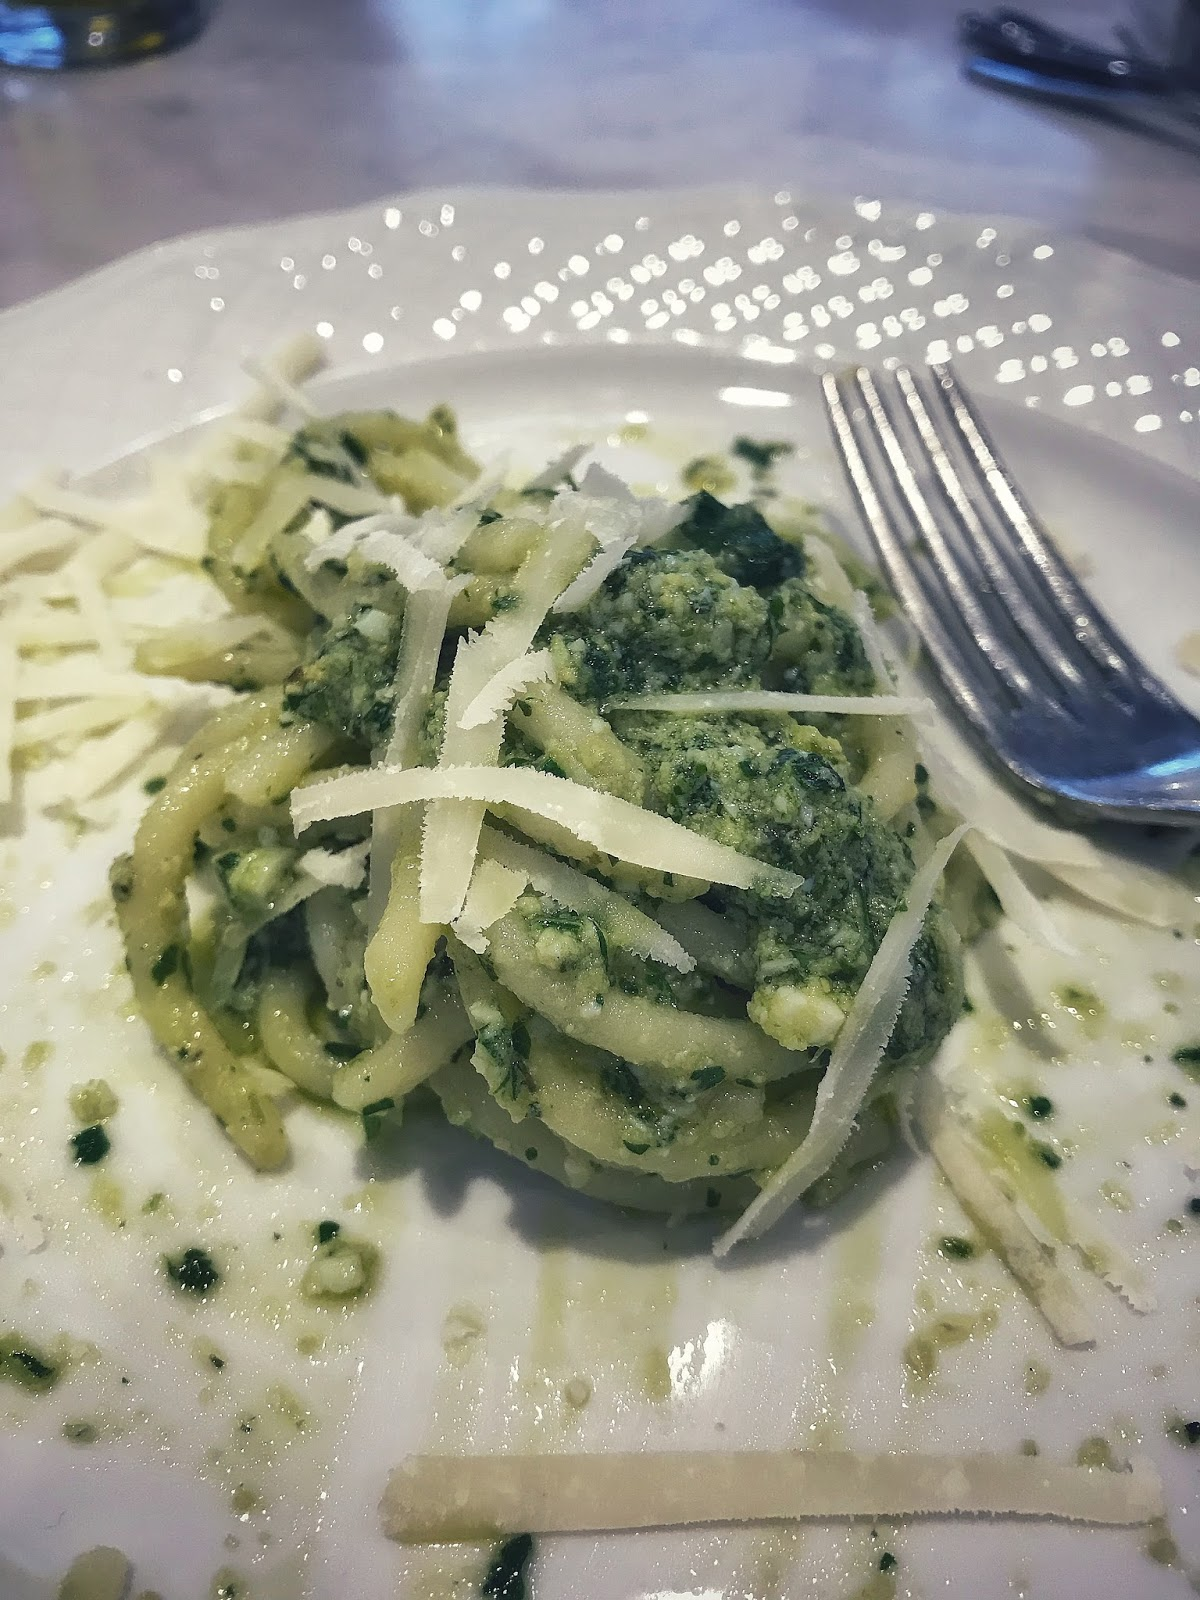 Italian Pici Spaghetti topped with pesto sauce and parmesan cheese